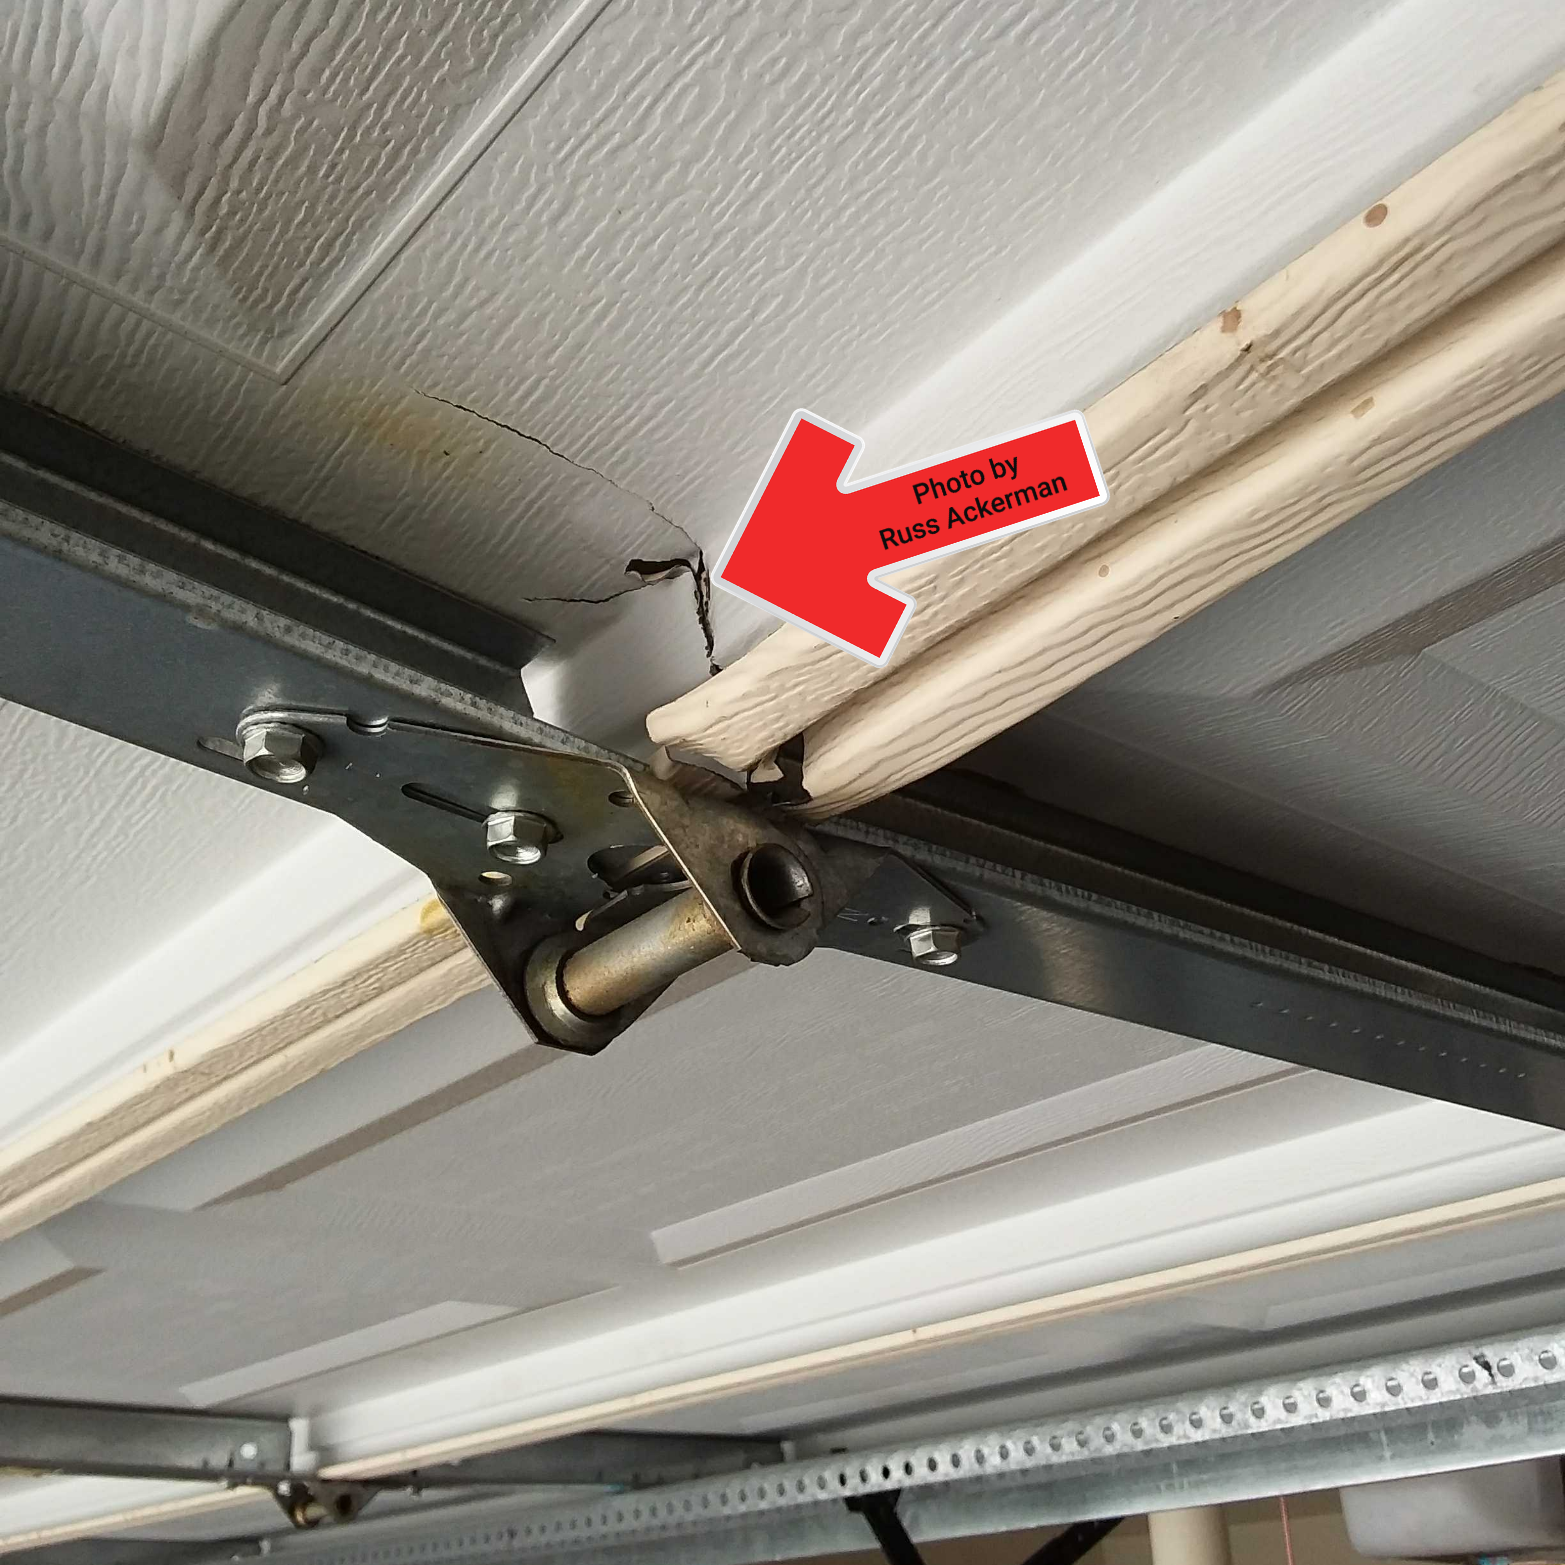 This damaged garage door can barely support itself when open and is a potential collapse hazard. Replacement is needed.